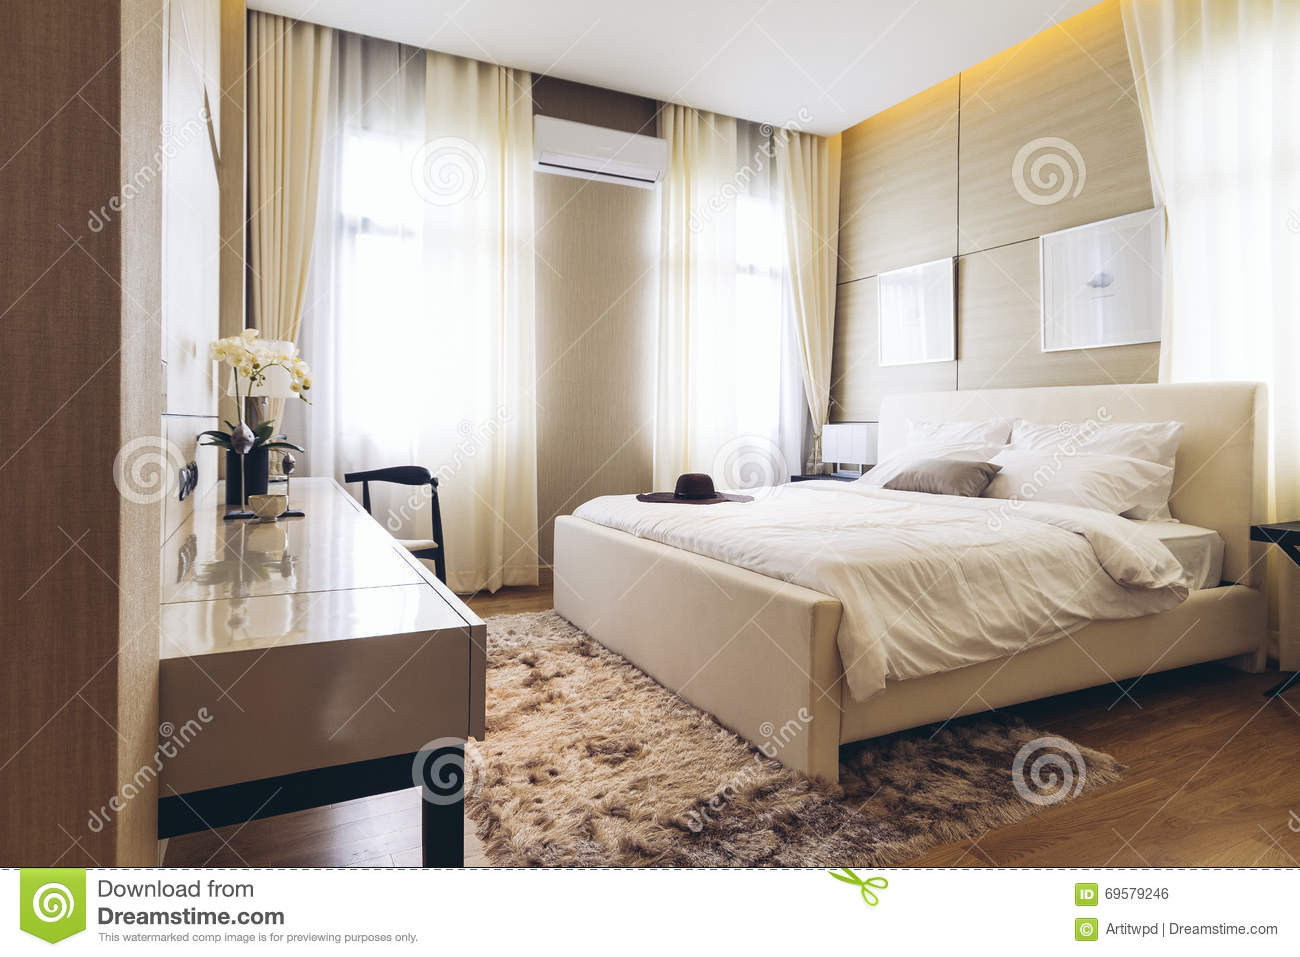 House Mod Le Moderne Italien Chambre Coucher Photo